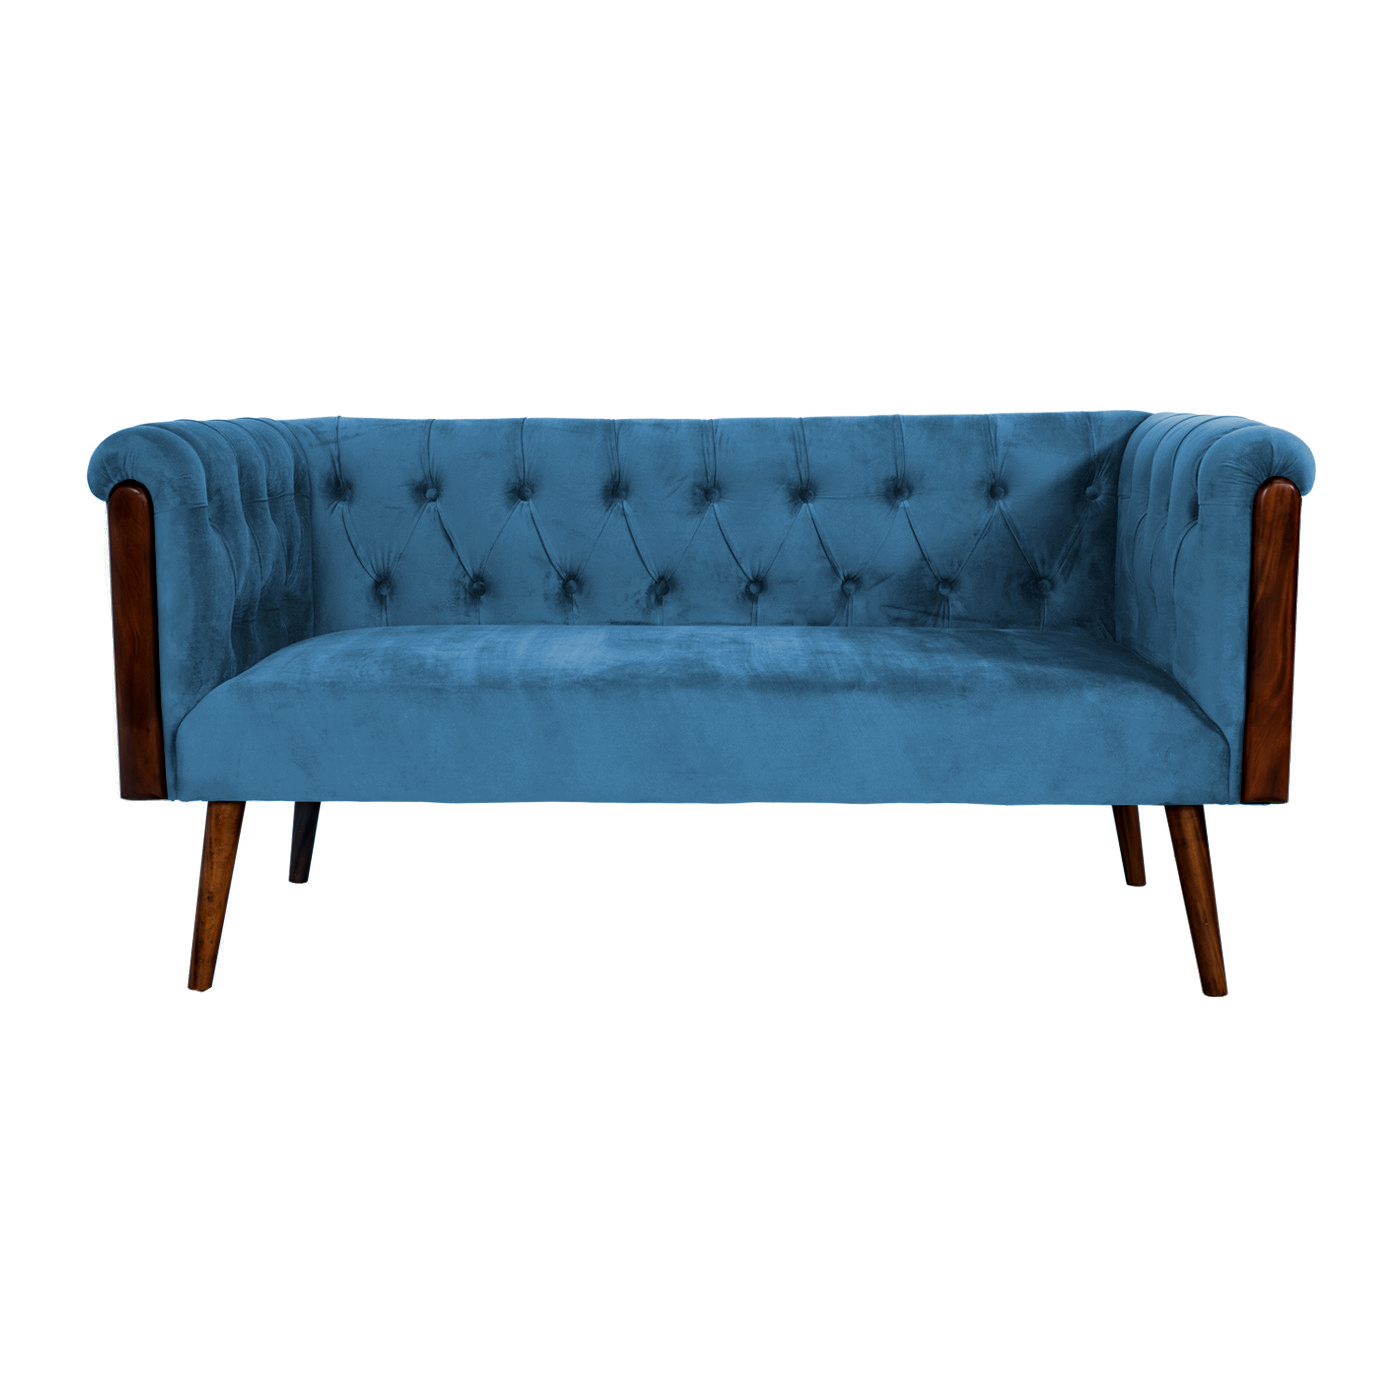 Chesterfield Blue Velvet Stitch Double Sofa